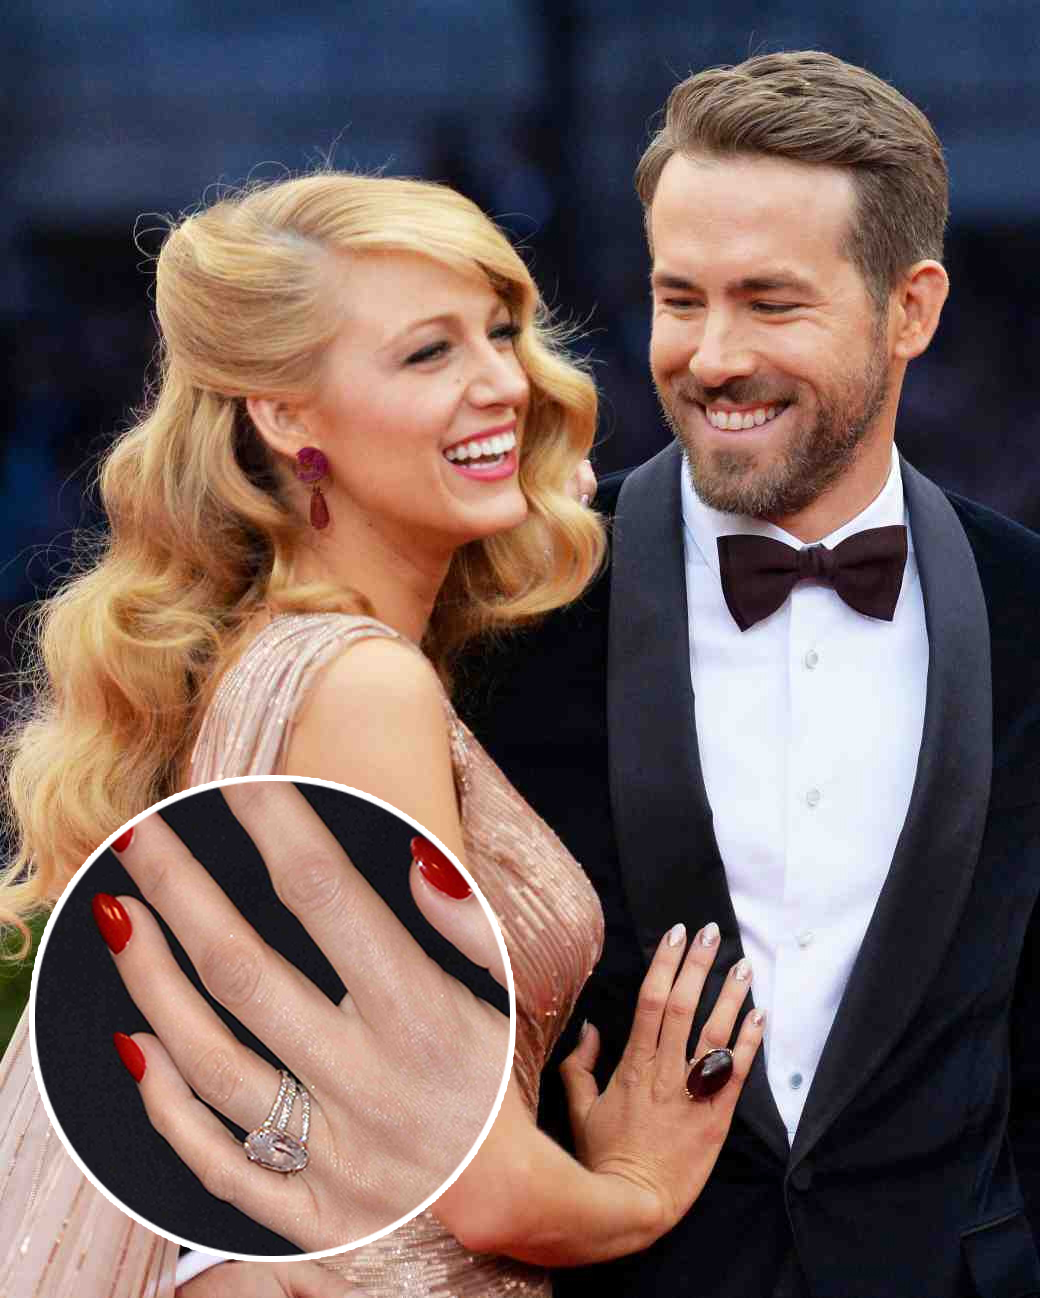 blake-lively-ring-inset-0316.jpg